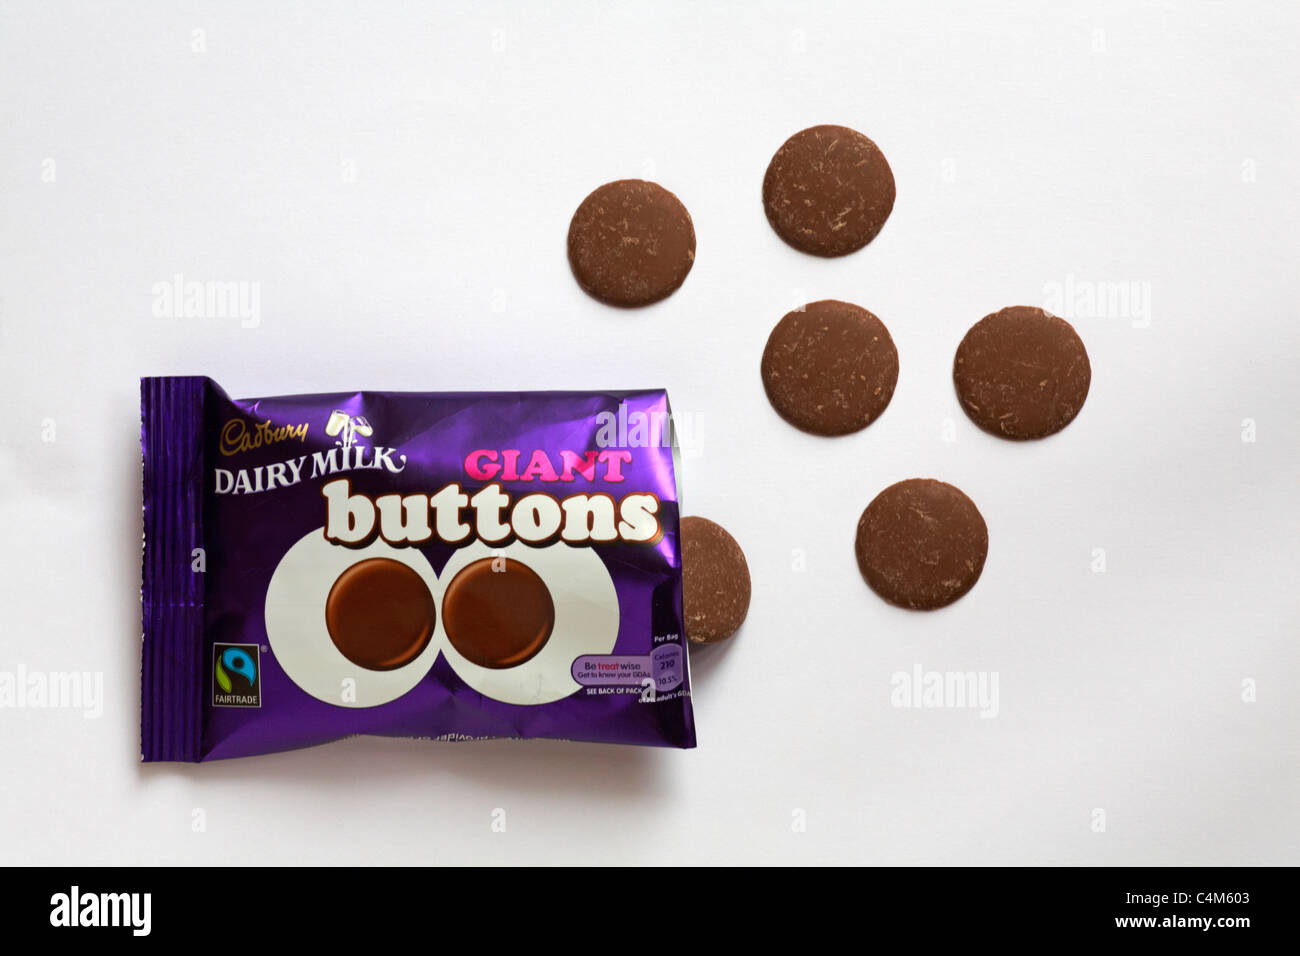 Packet Of Opened Cadbury Dairy Milk Giant Buttons With